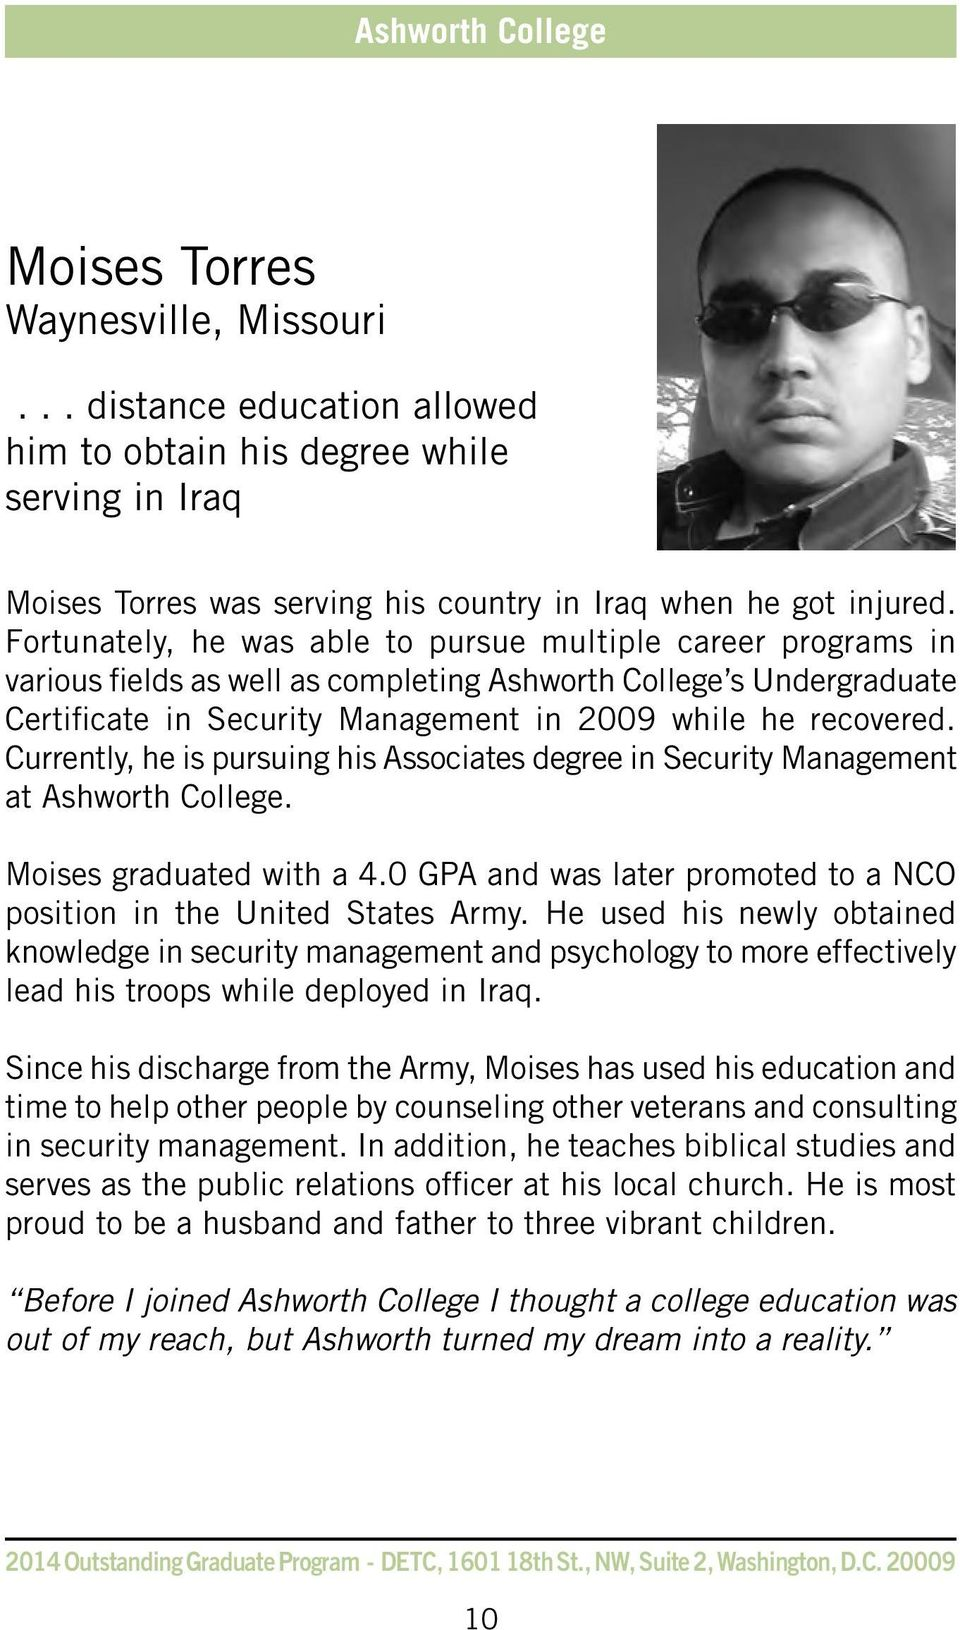 Currently, he is pursuing his Associates degree in Security Management at Ashworth College. Moises graduated with a 4.0 GPA and was later promoted to a NCO position in the United States Army.